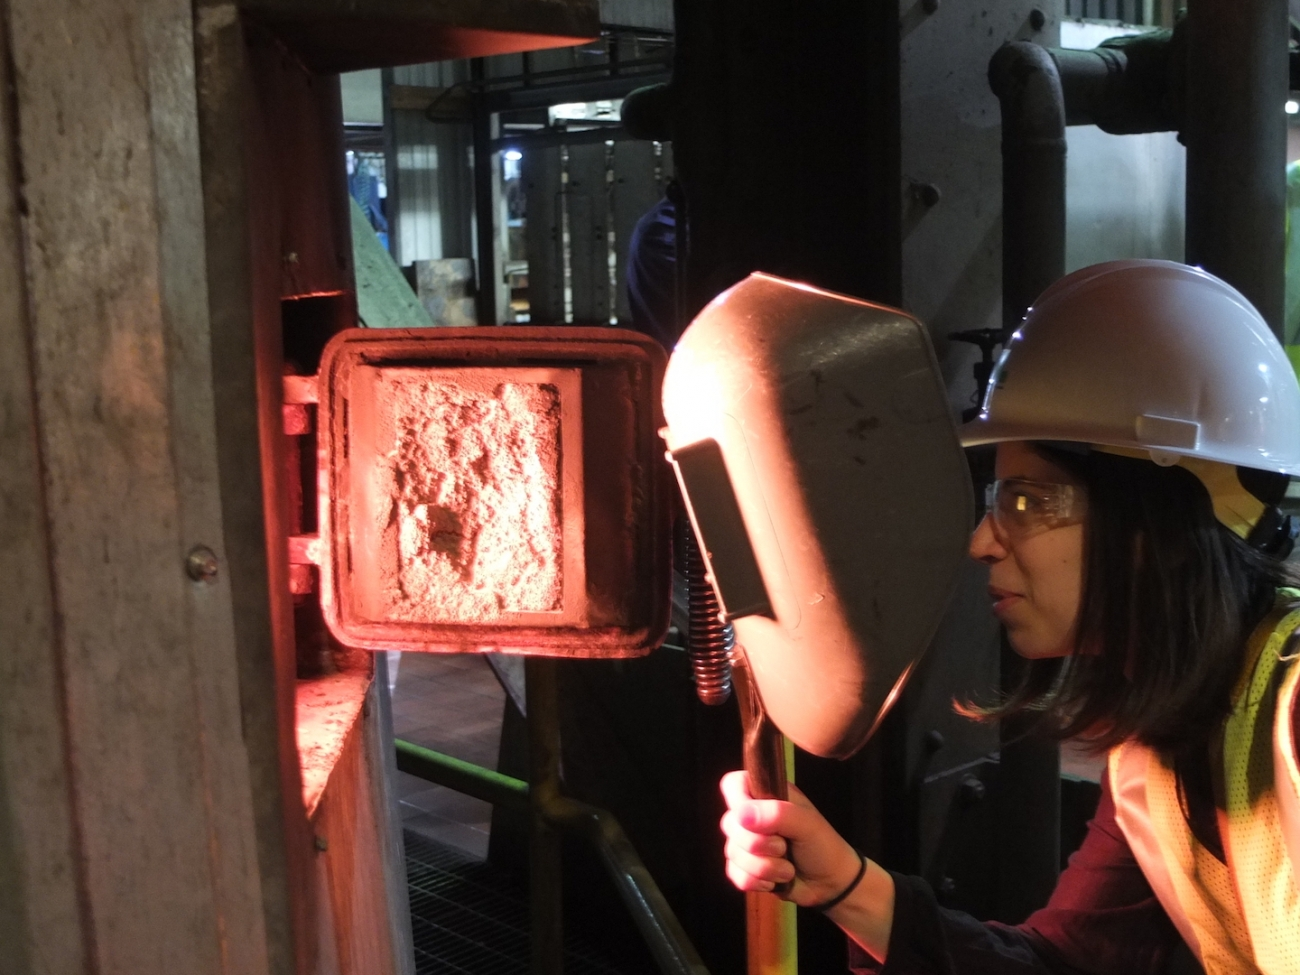 An intern peers into a furnace.